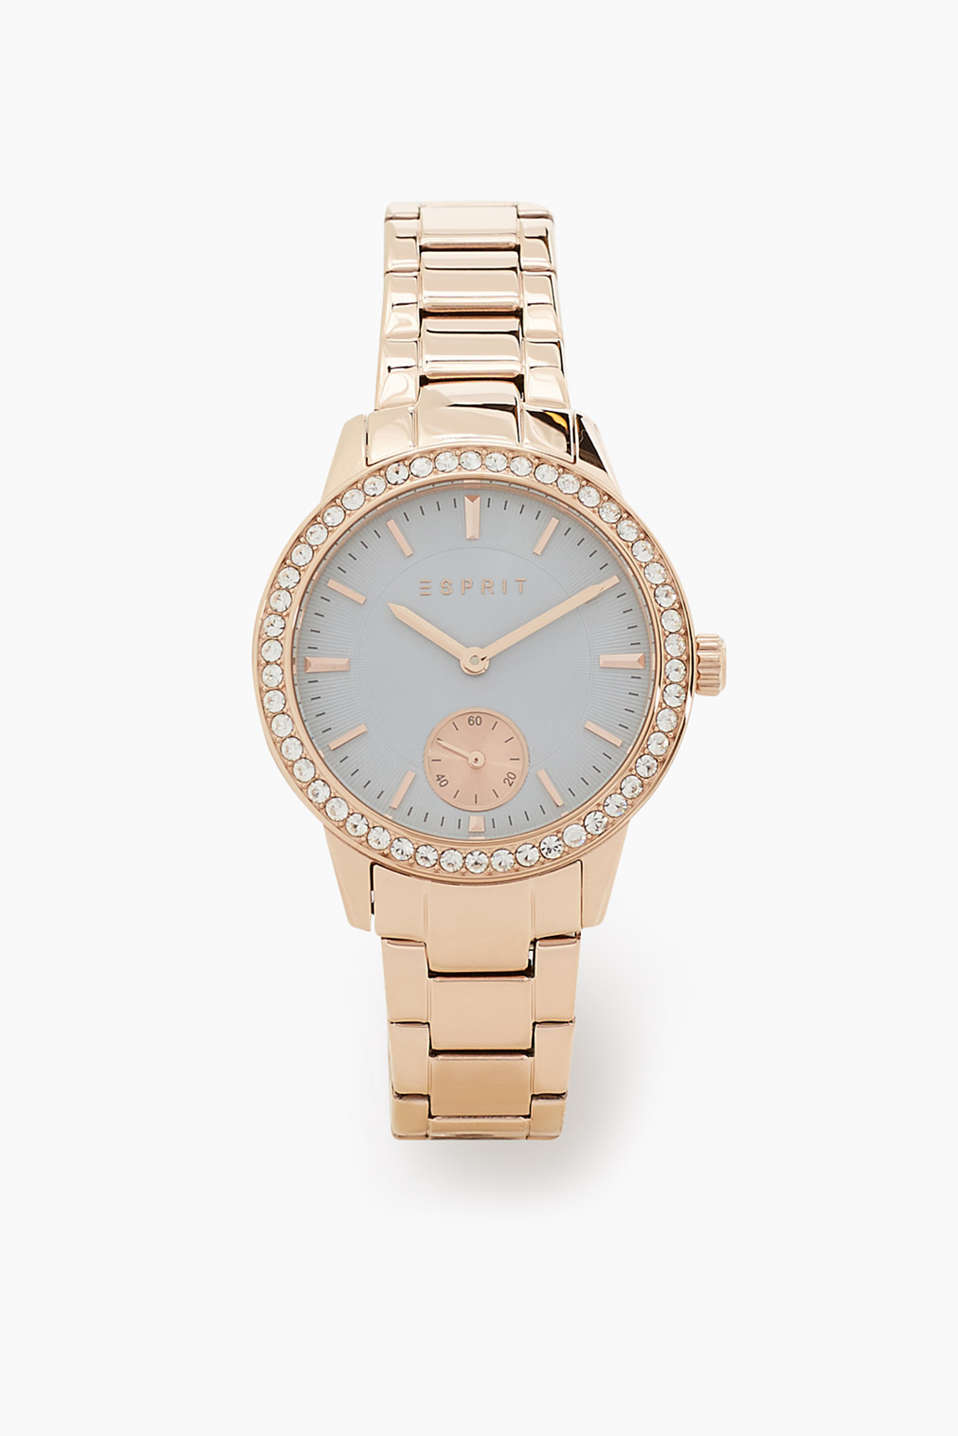 We love rose gold! Stainless steel watch with a link strap